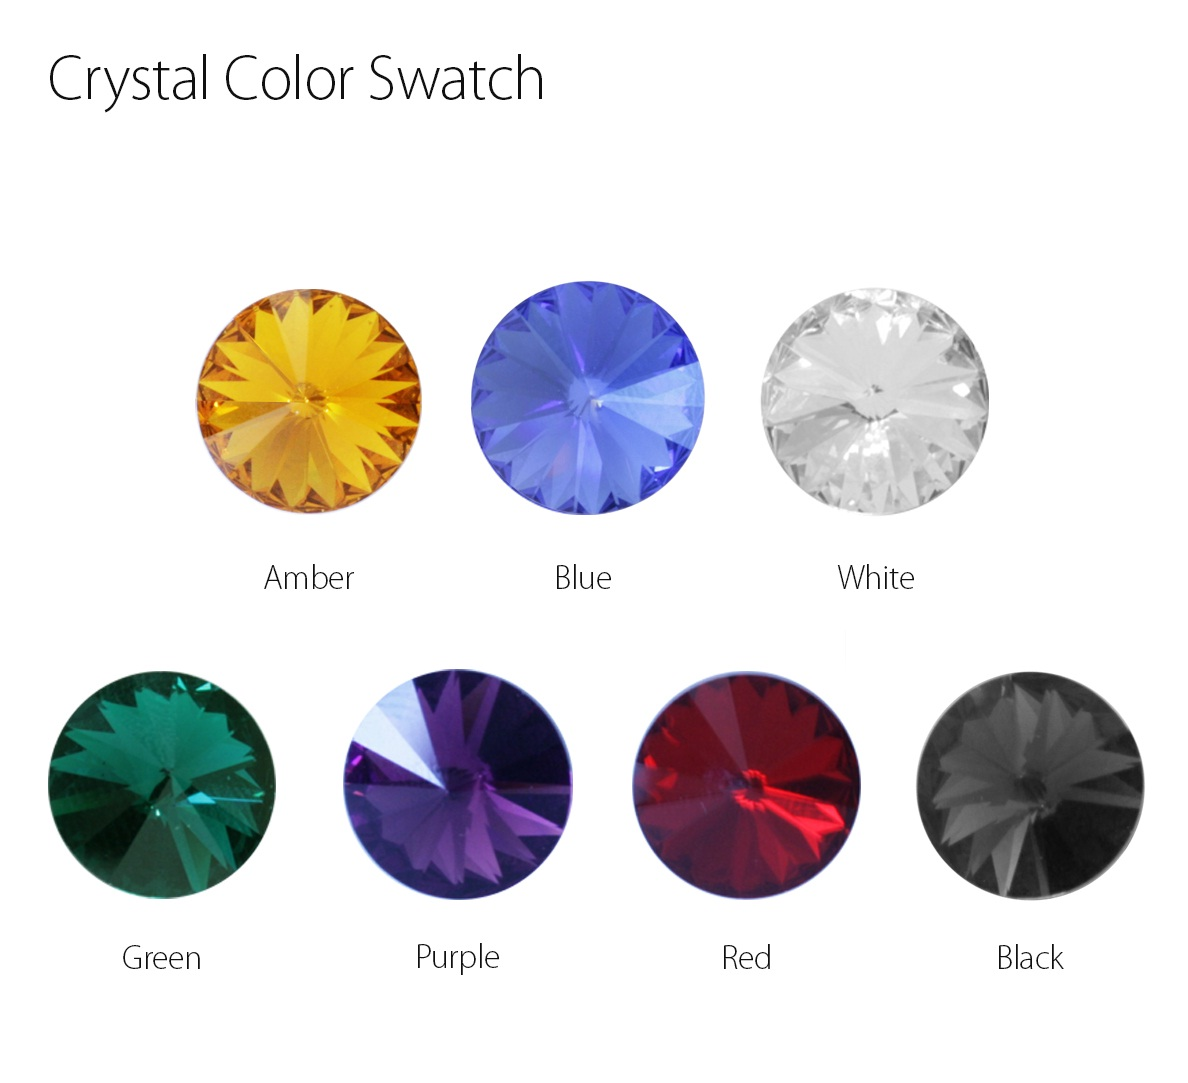 Crystal Color Swatch for Turn Signal Handle w/Crystal on Top